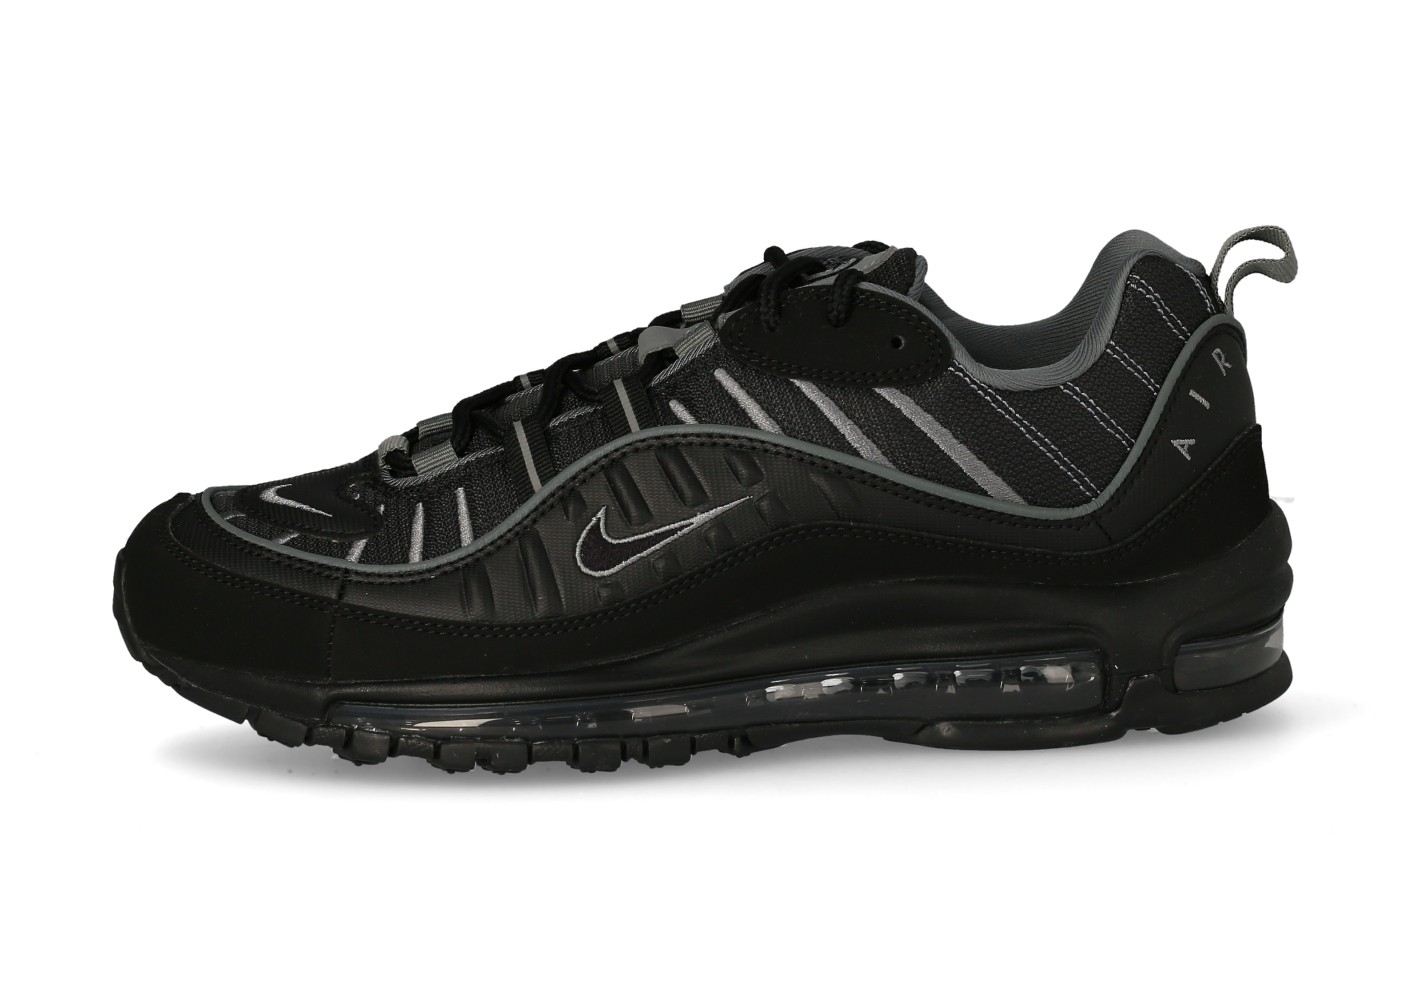 Nike Air Max 98 noir anthracite - Chaussures Baskets homme ...